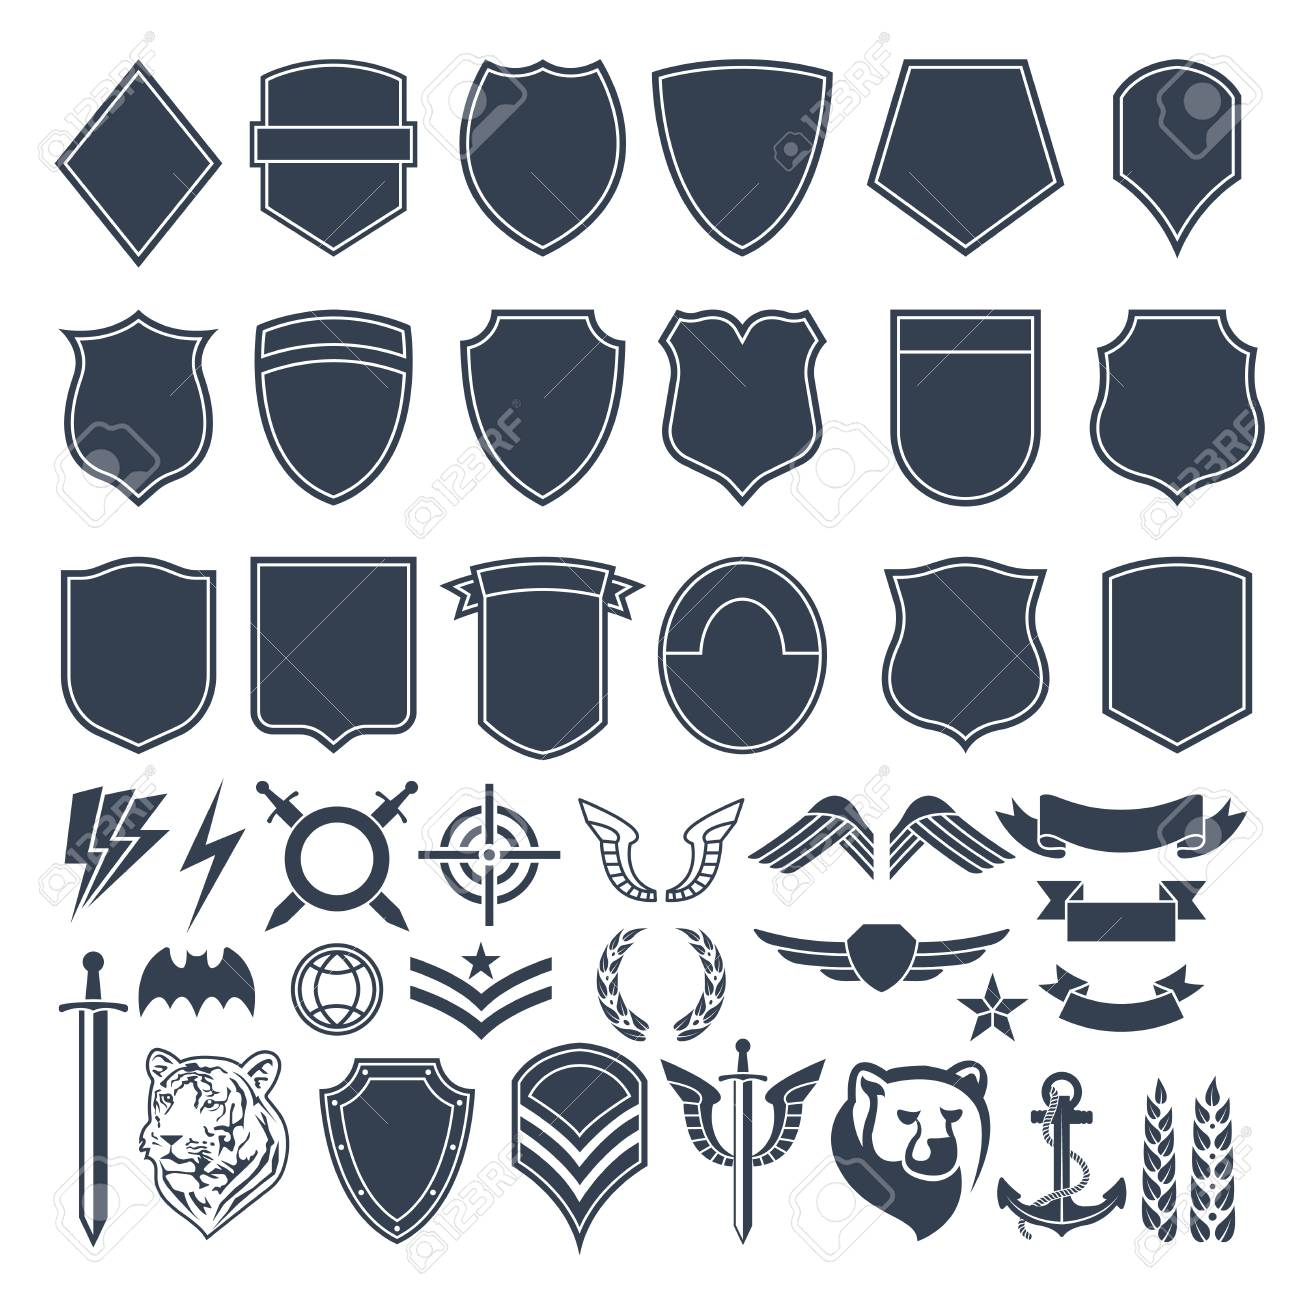 Set of empty shapes for military badges. Army monochrome symbols Vector illustration. - 97333491